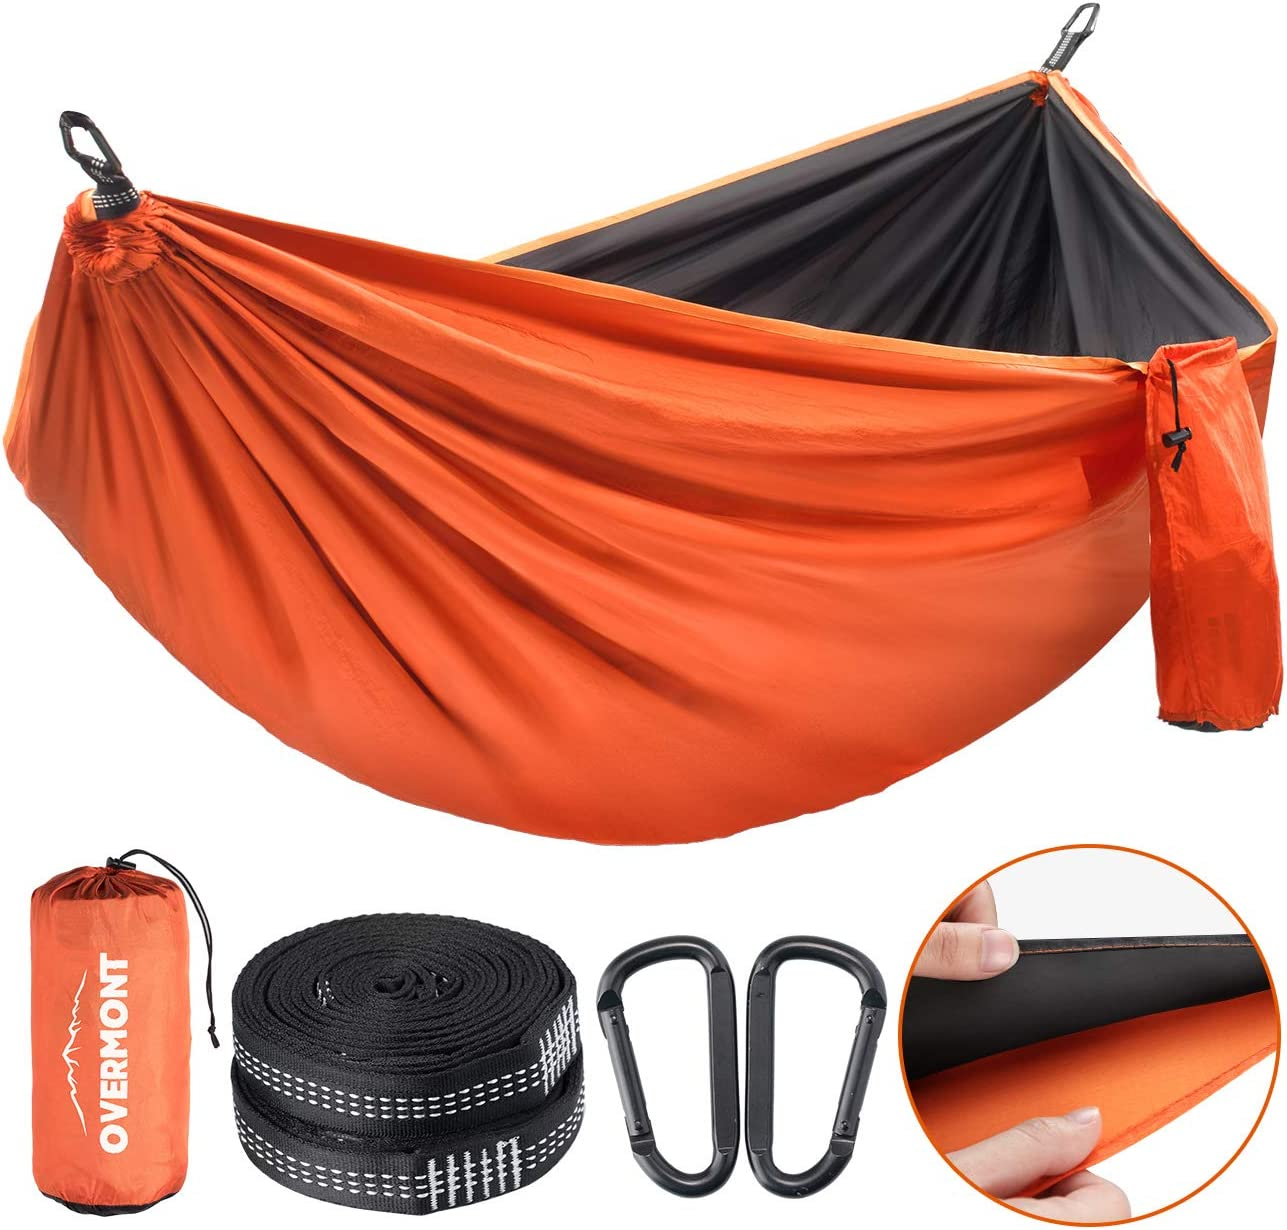 Overmont Double Layers Outdoor Hammock for Two German TUV Certificated Portable Camping Hammock Lightweight for Backpacking Hiking Sports Travel with Tree Straps Max Load of 880lbs